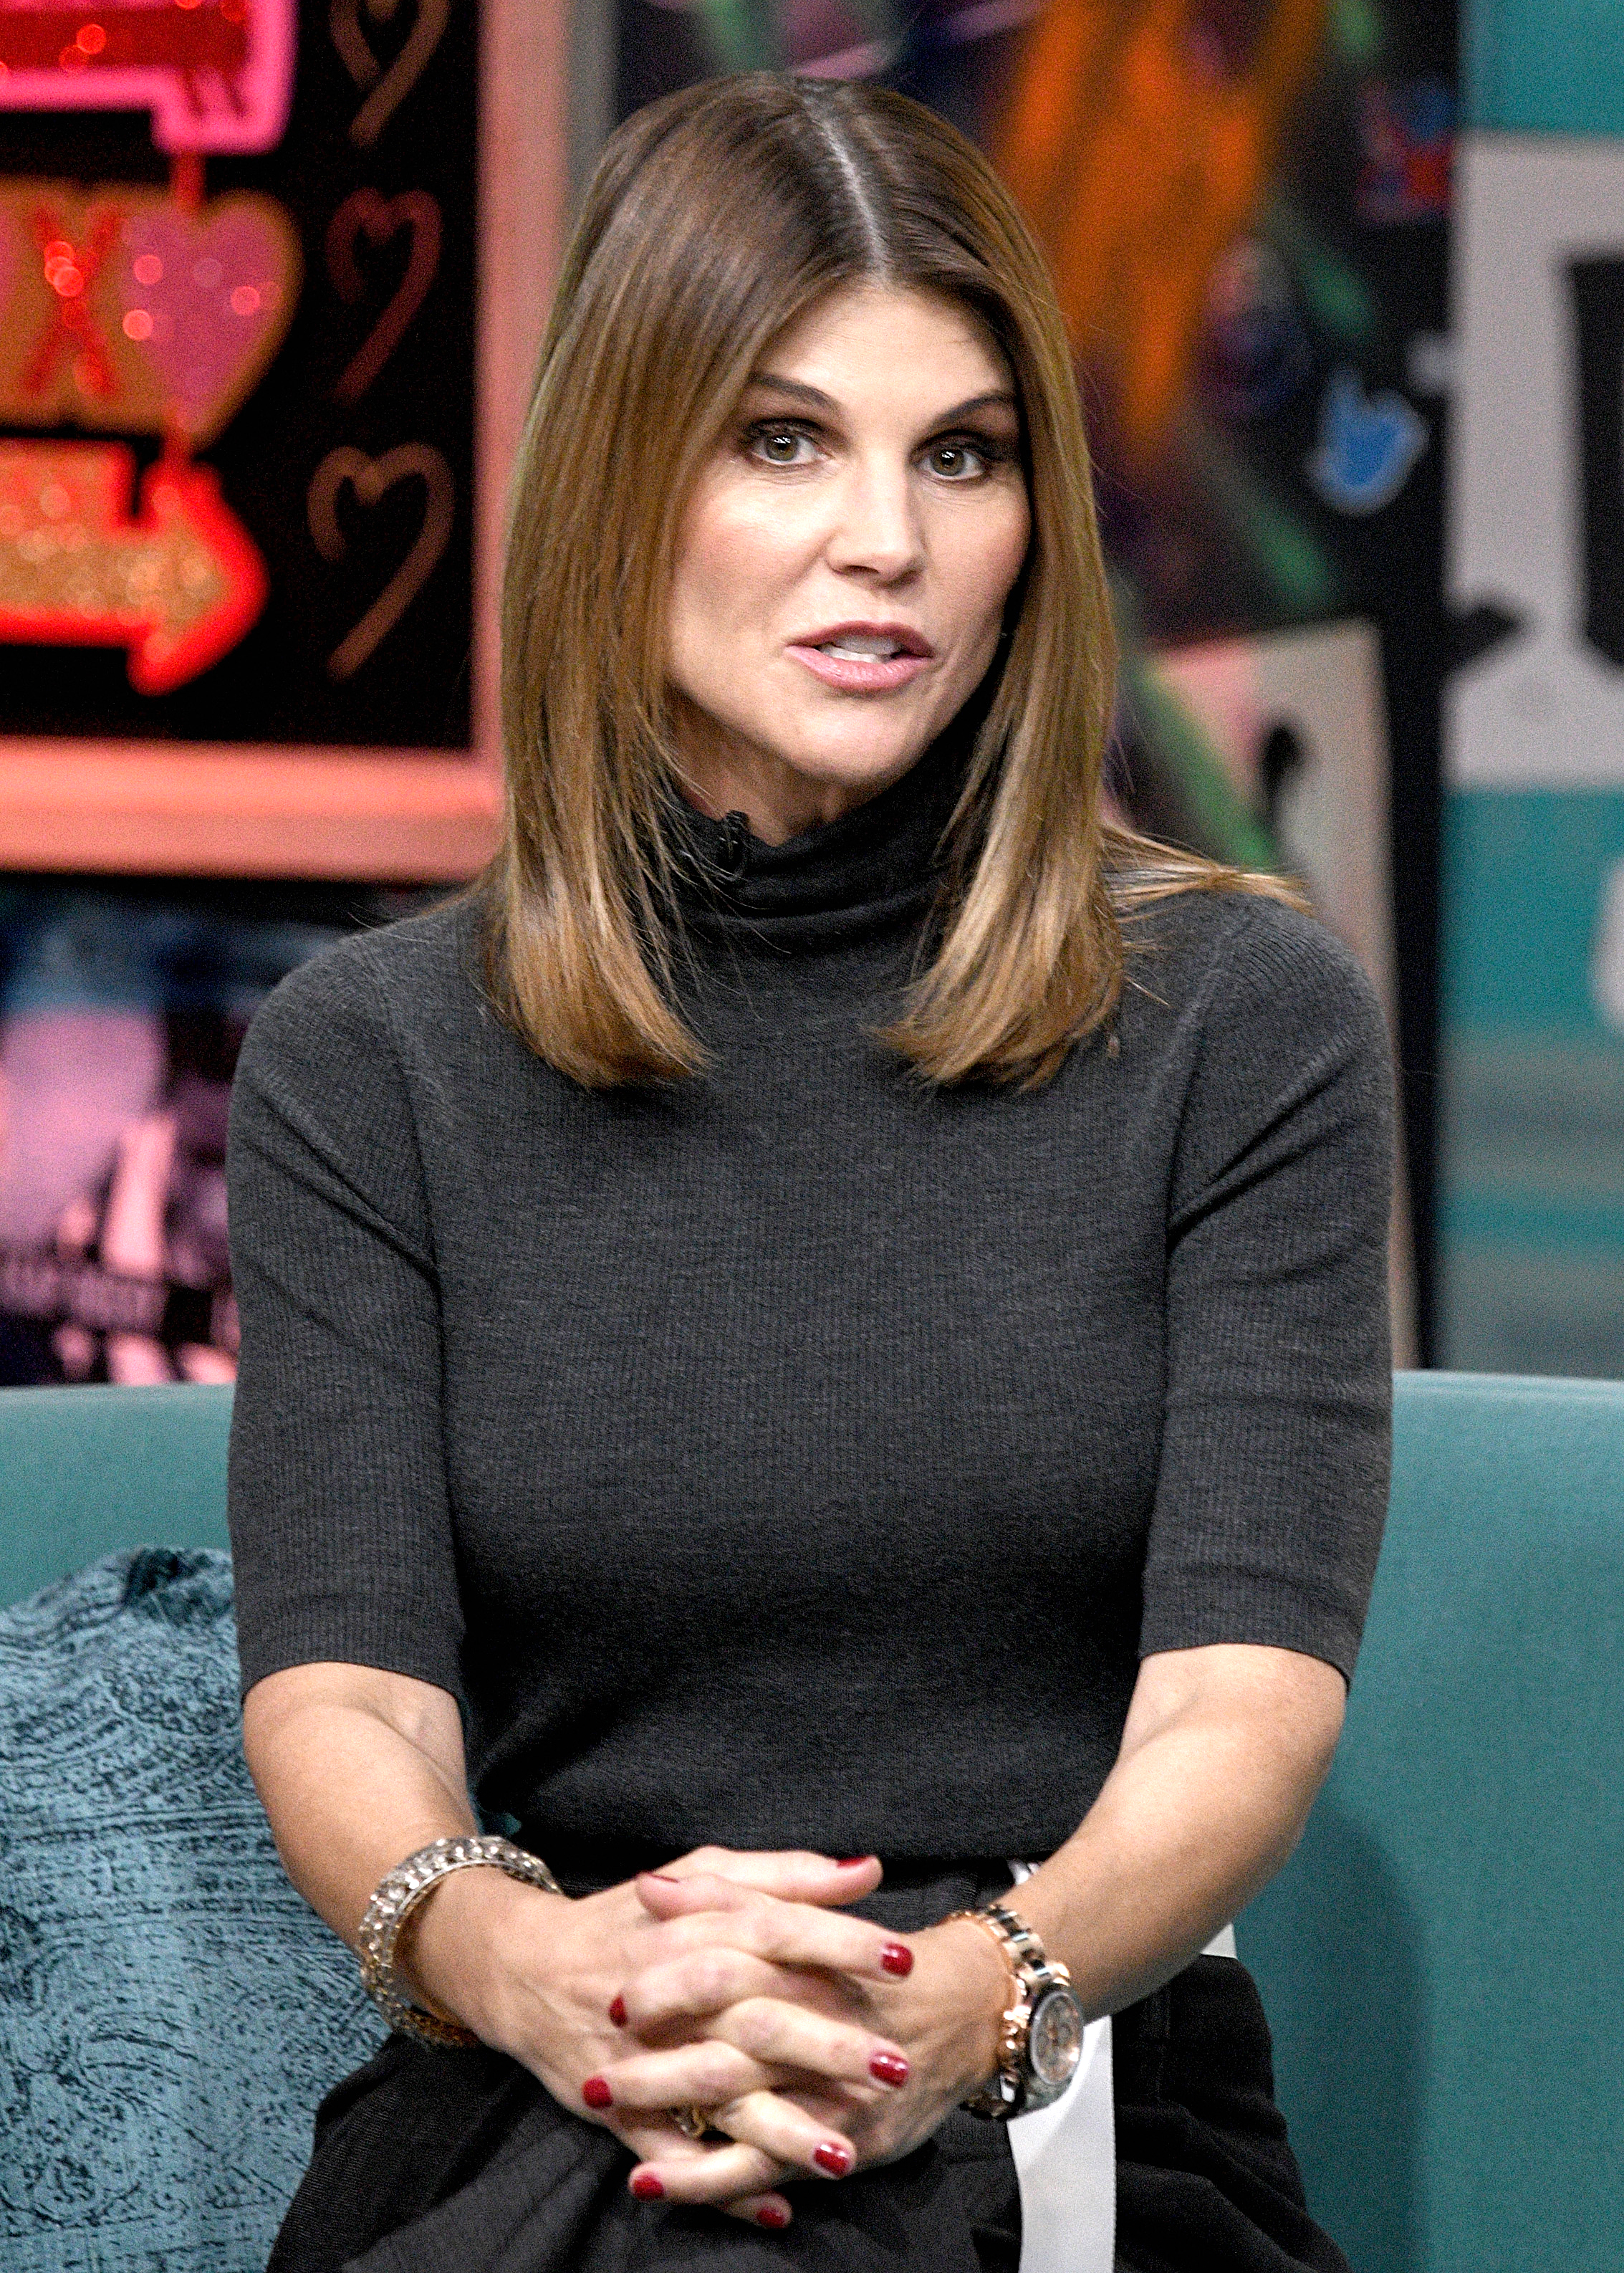 Lori Loughlin Hasn't Wanted to Leave Her House Amid College Admissions Scandal - Lori Loughlin visits the Build Brunch to discuss the Hallmark Channel TV series 'When Calls the Heart' on February 14, 2019 in New York City.